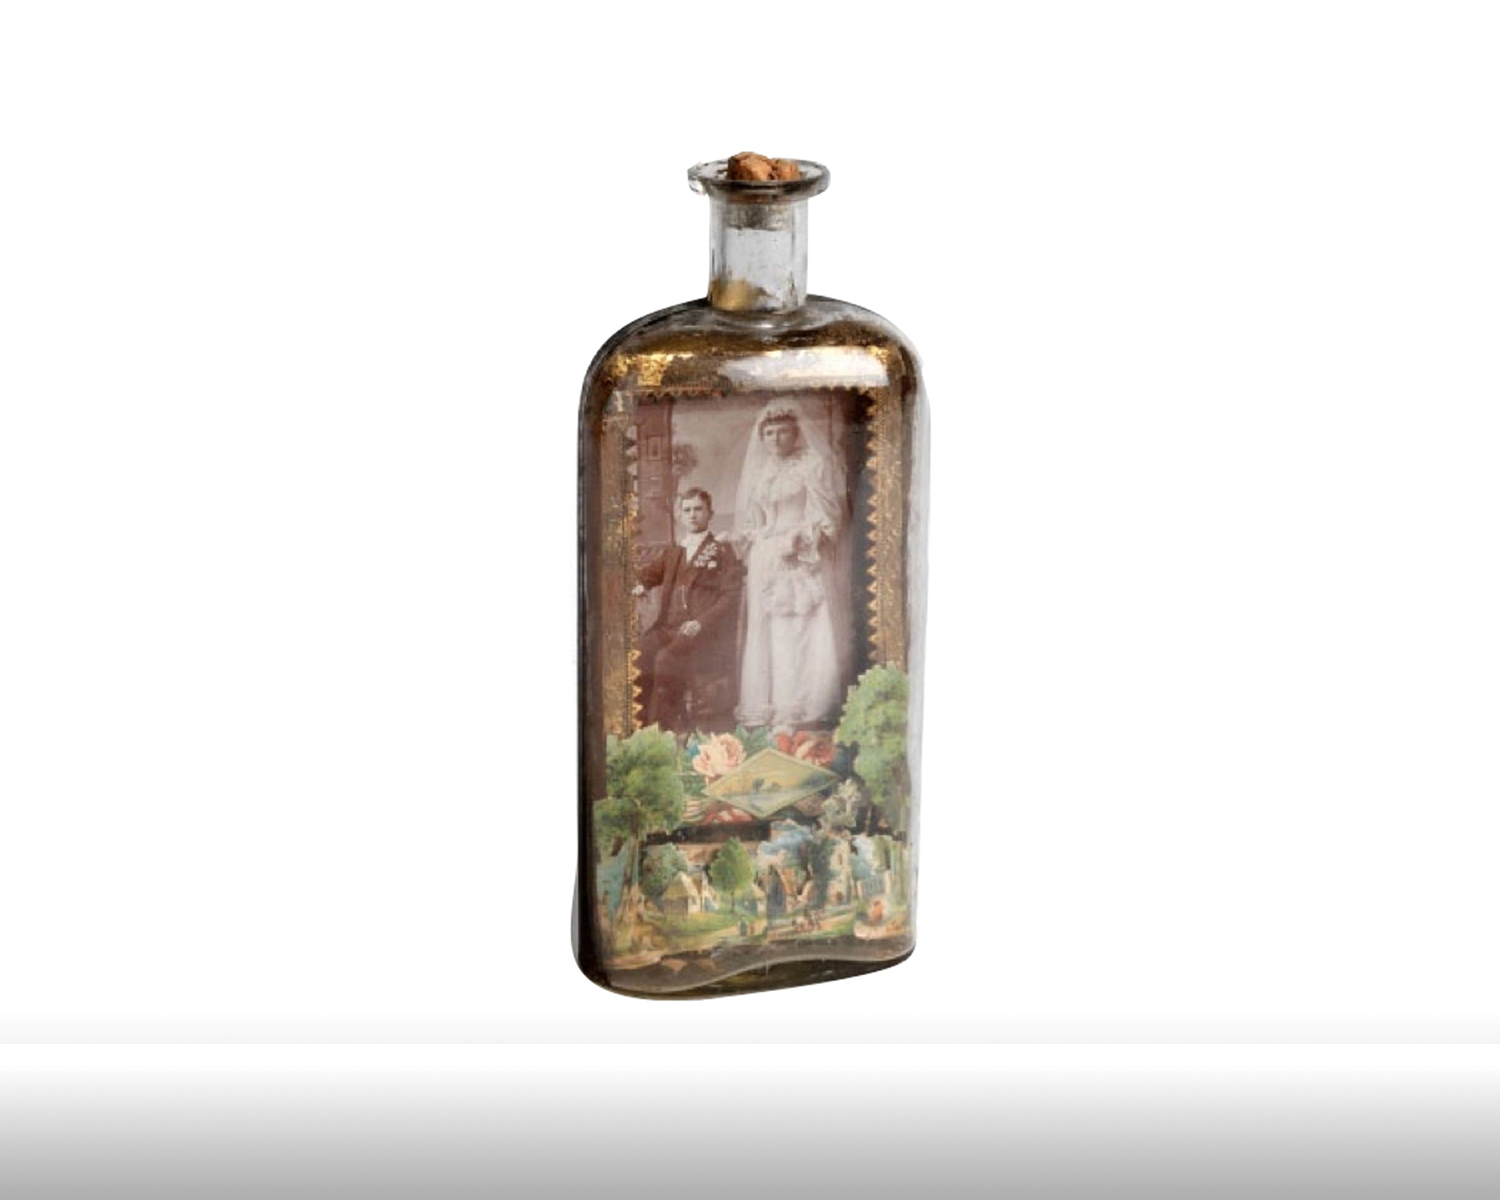 Whiskey bottle with portrait of newlyweds set against a die cut pastoral background. 1880s